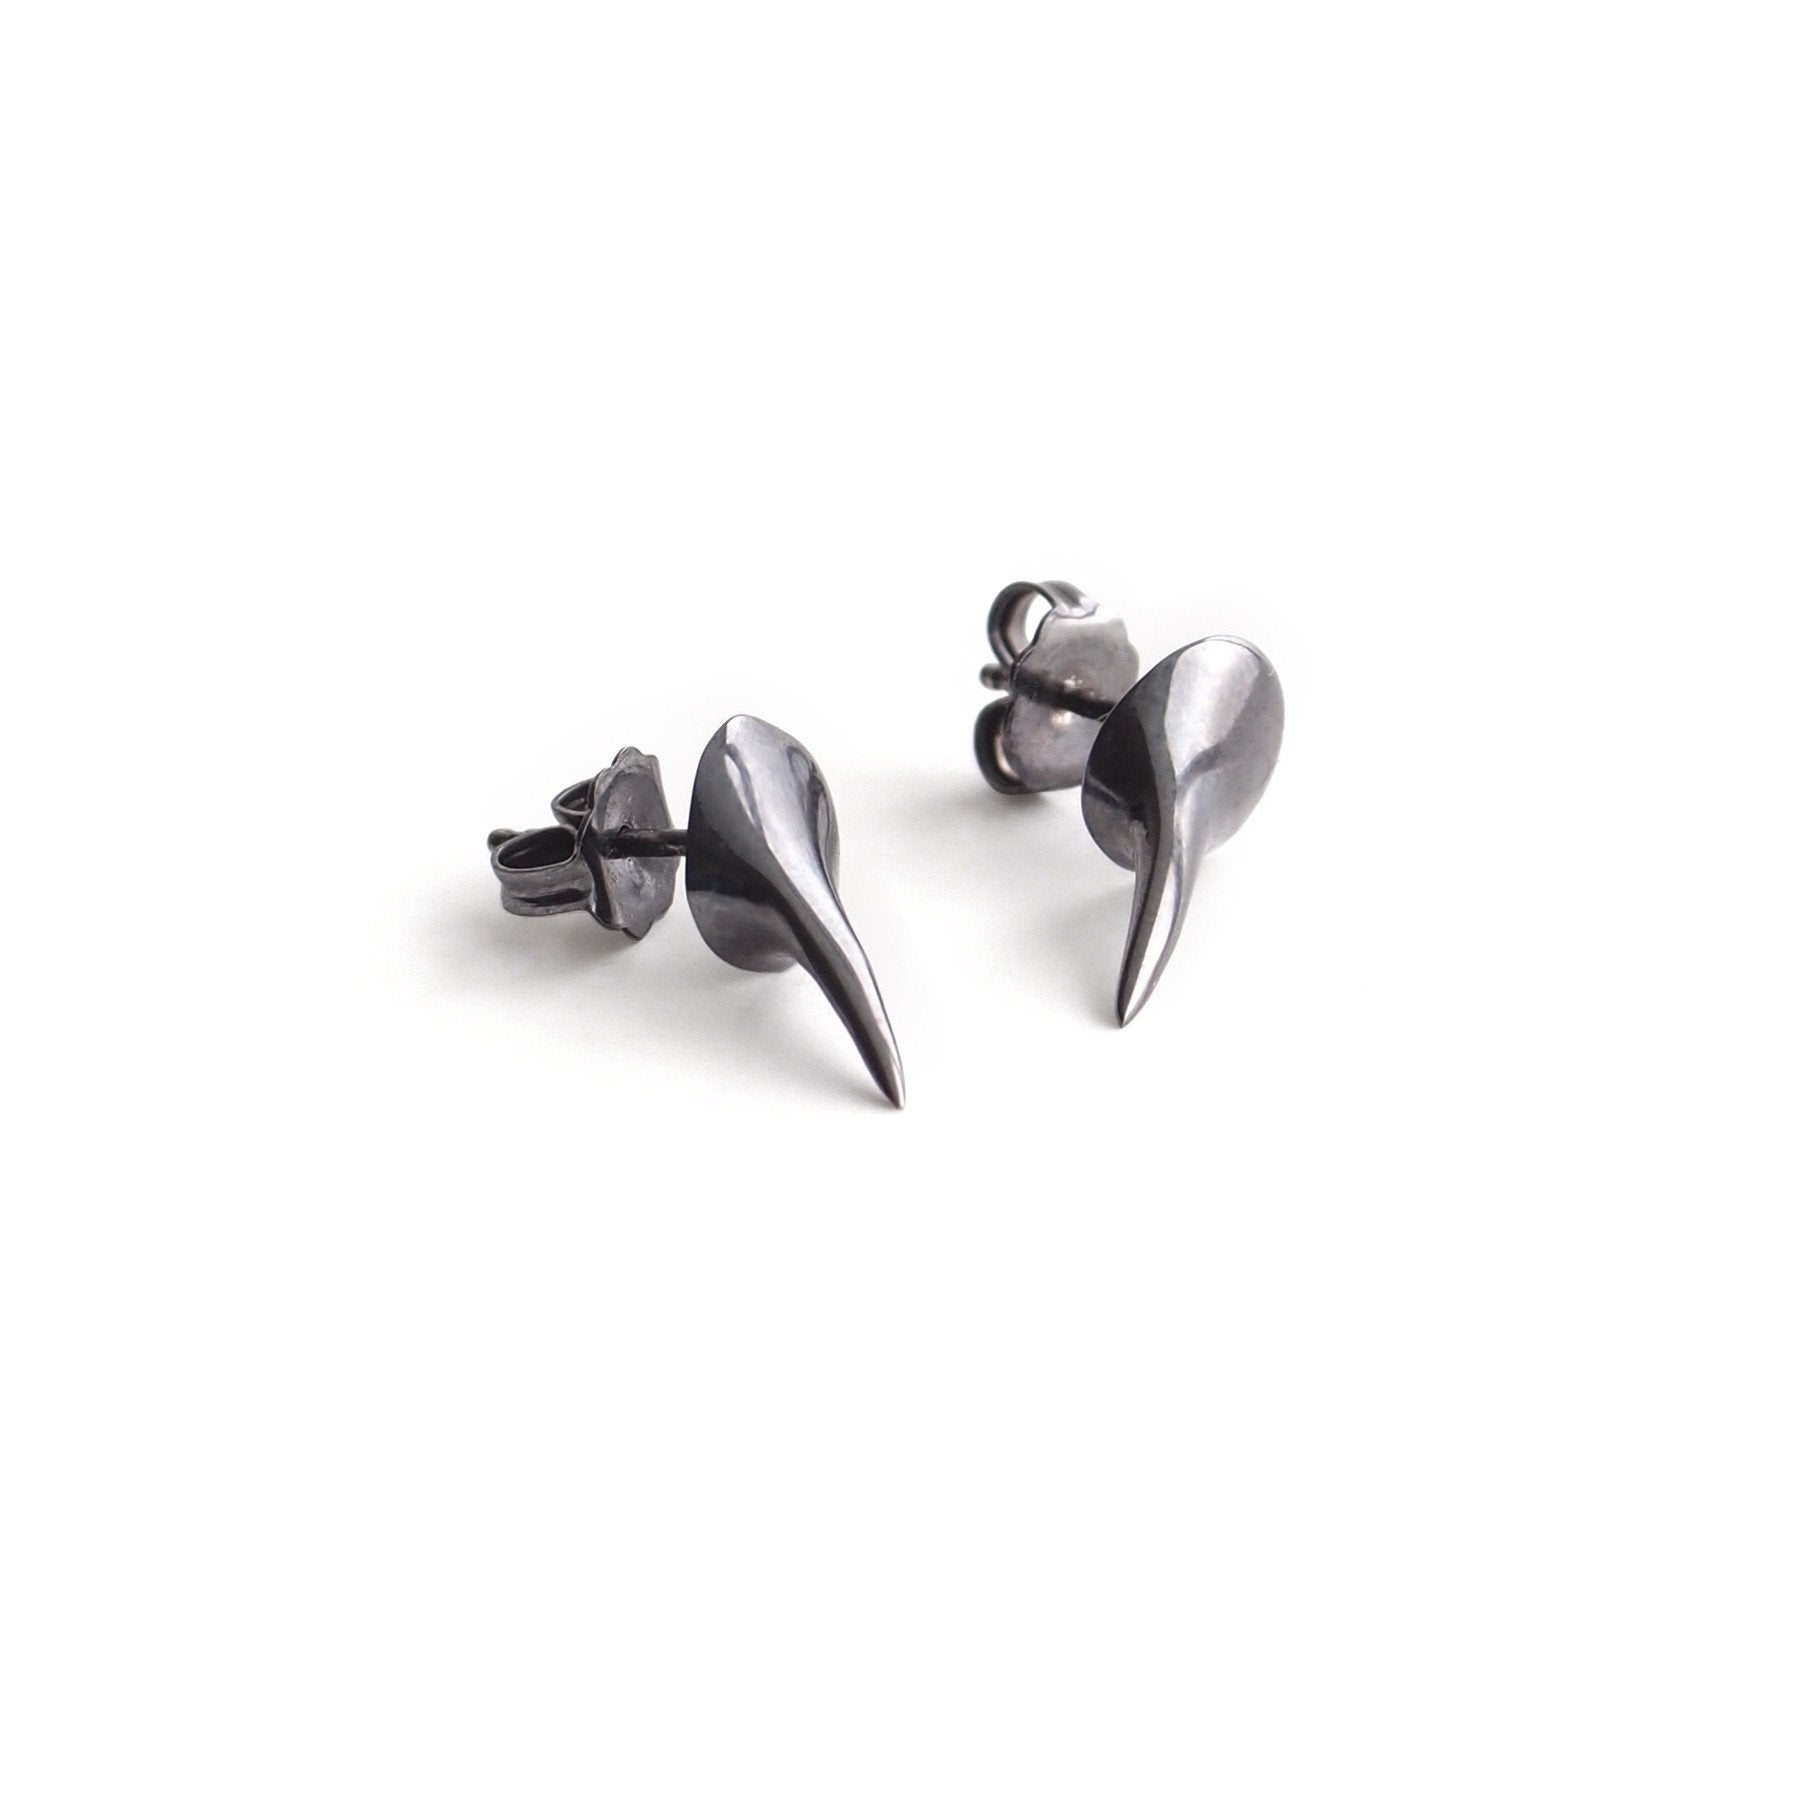 sterling silver plated in black rhodium talon studs